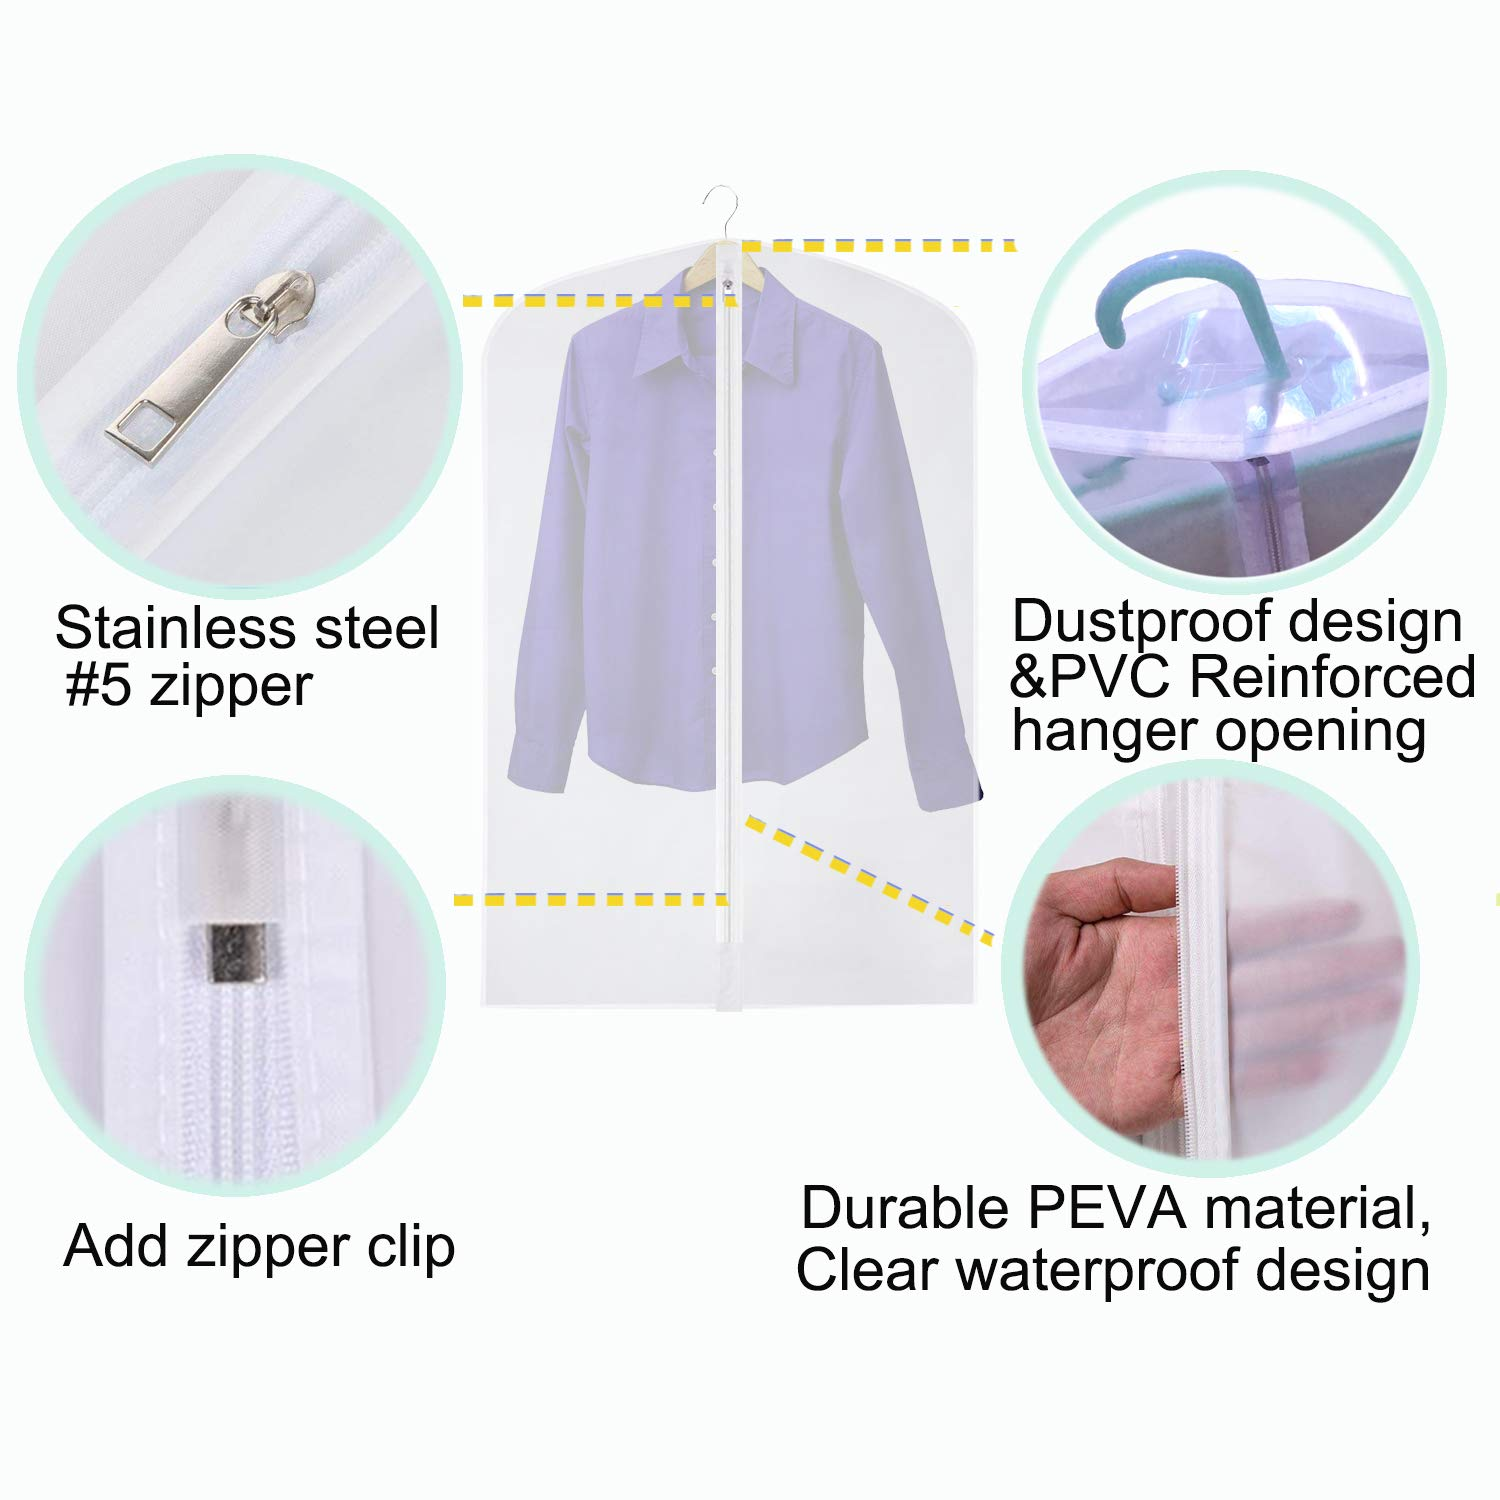 for Dance Costumes Gown Dress Clothes Storage 48//60 inch CM CUMIZON Garment Bags Translucent Hanging Garment Covers GC6-4048 24 x 40//48 Set of 6